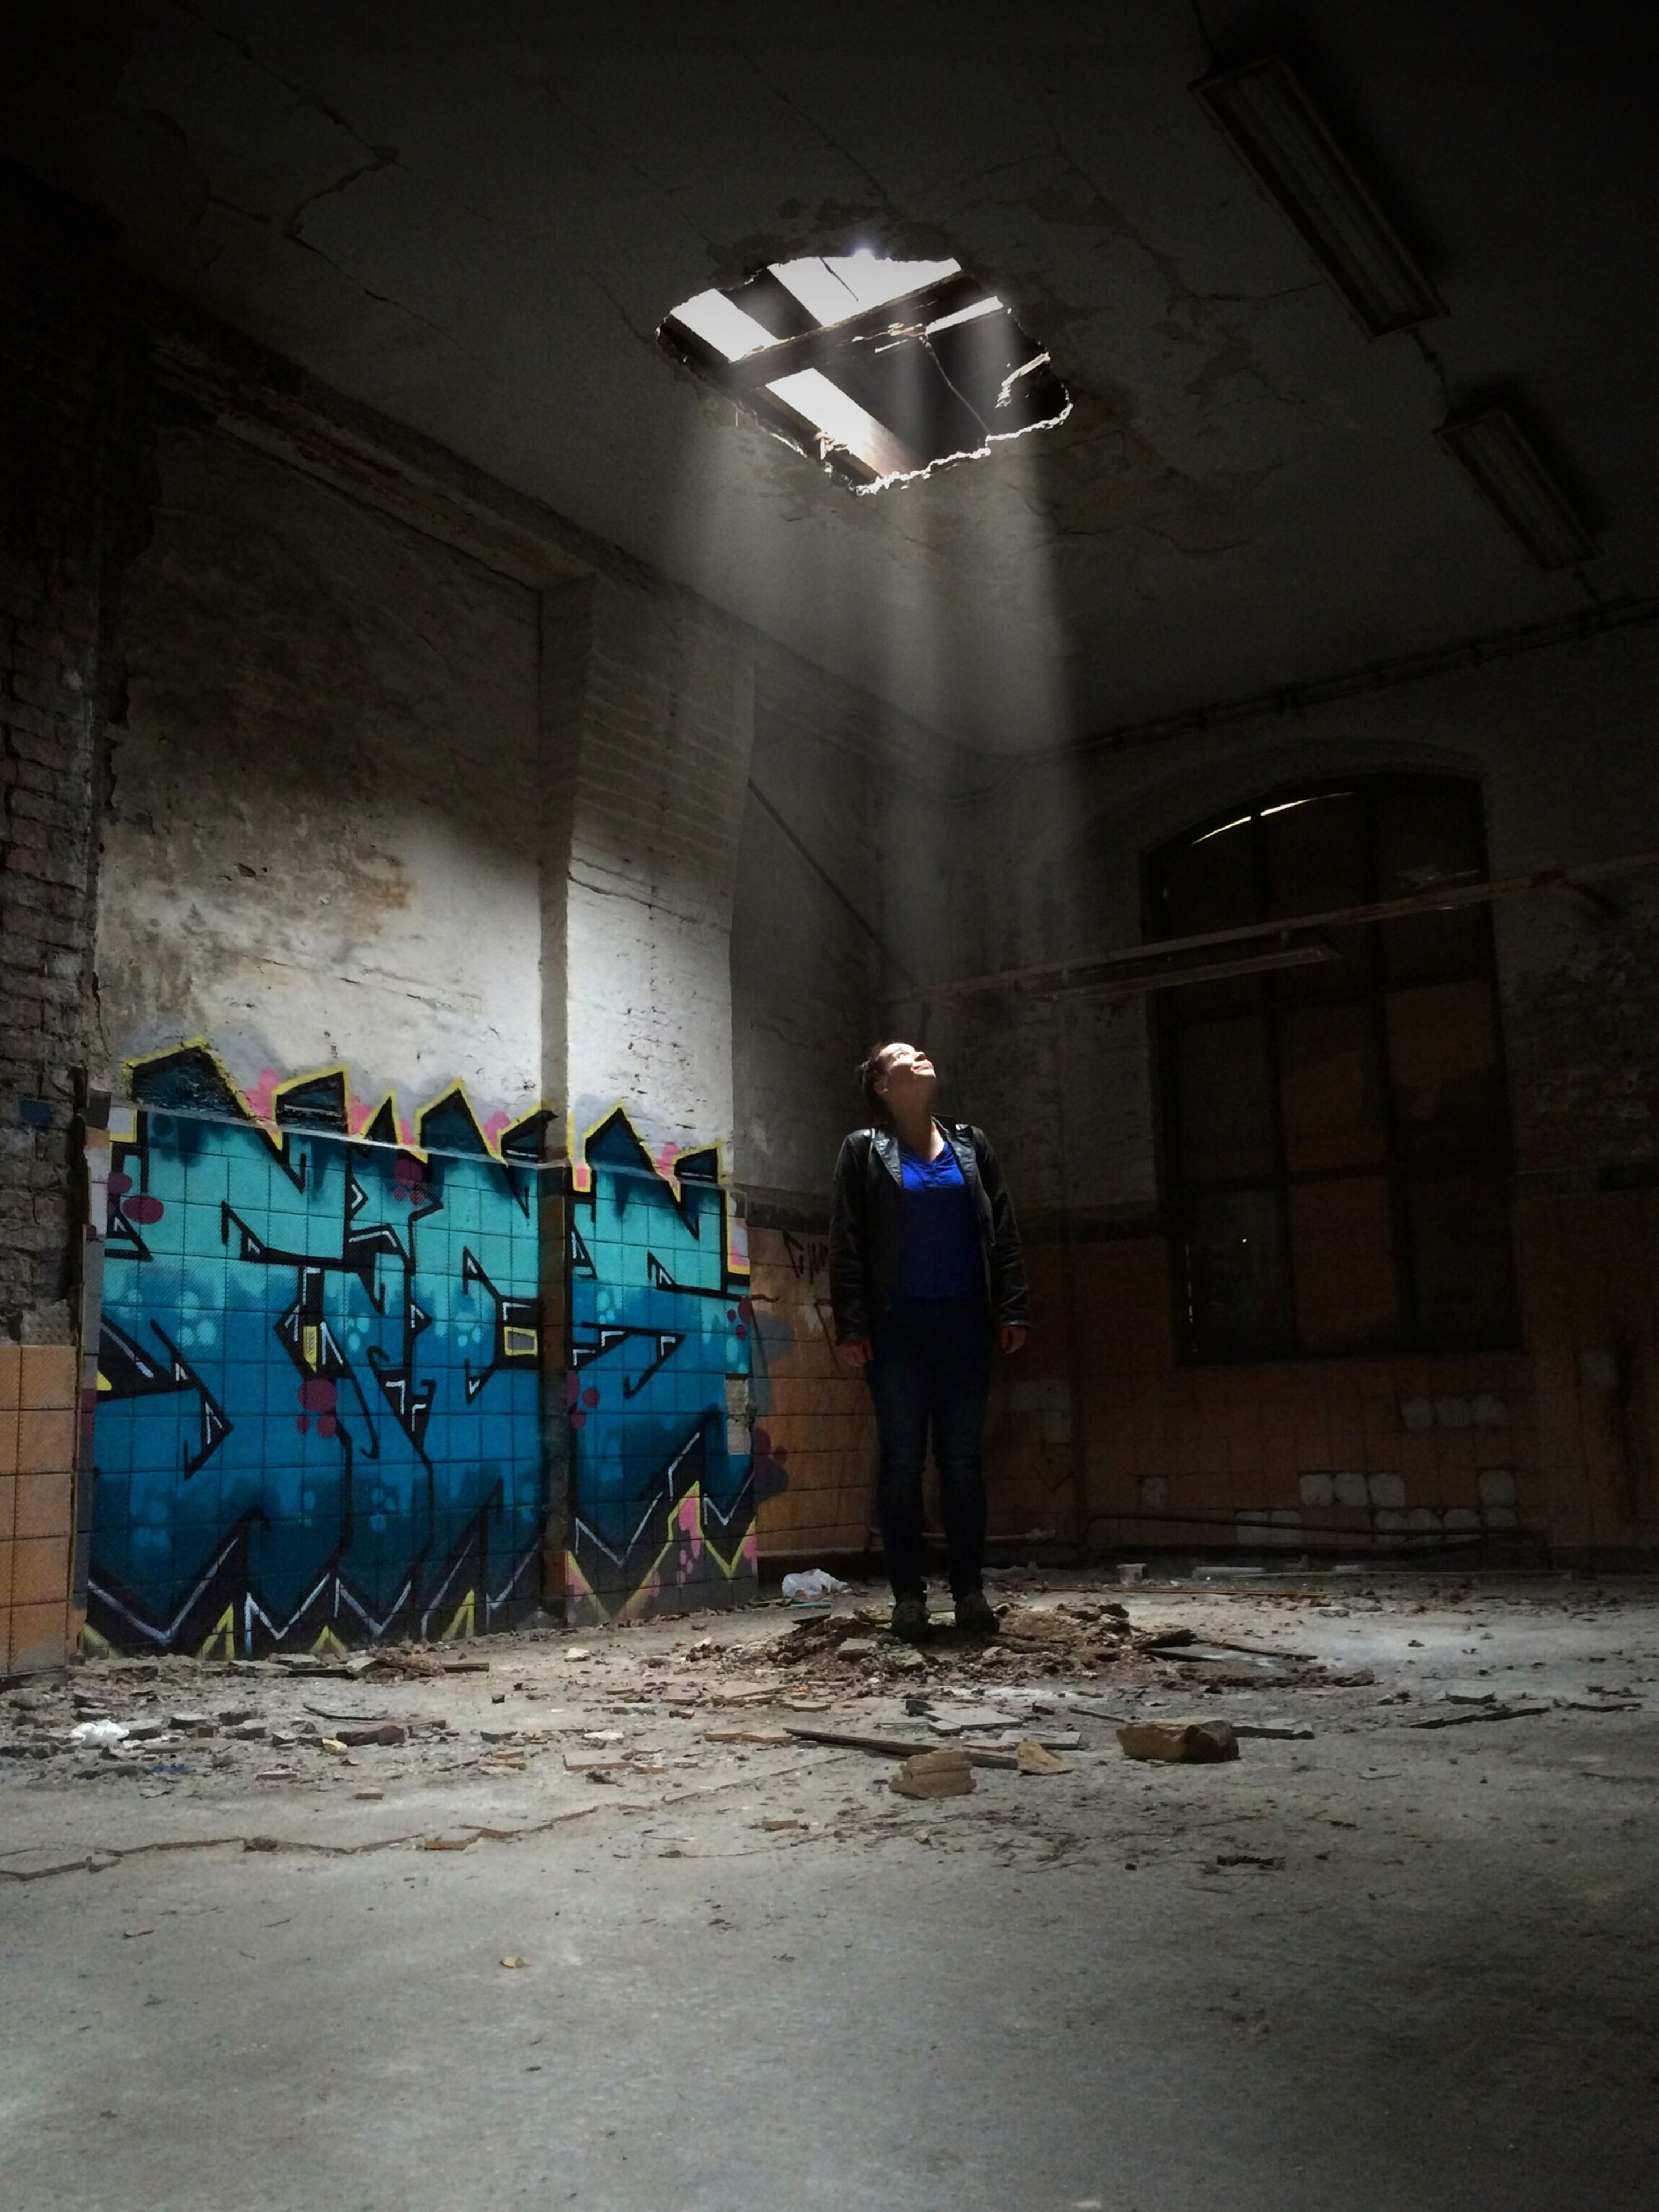 full length, indoors, built structure, architecture, rear view, abandoned, lifestyles, wall - building feature, casual clothing, graffiti, standing, men, leisure activity, messy, damaged, walking, flooring, person